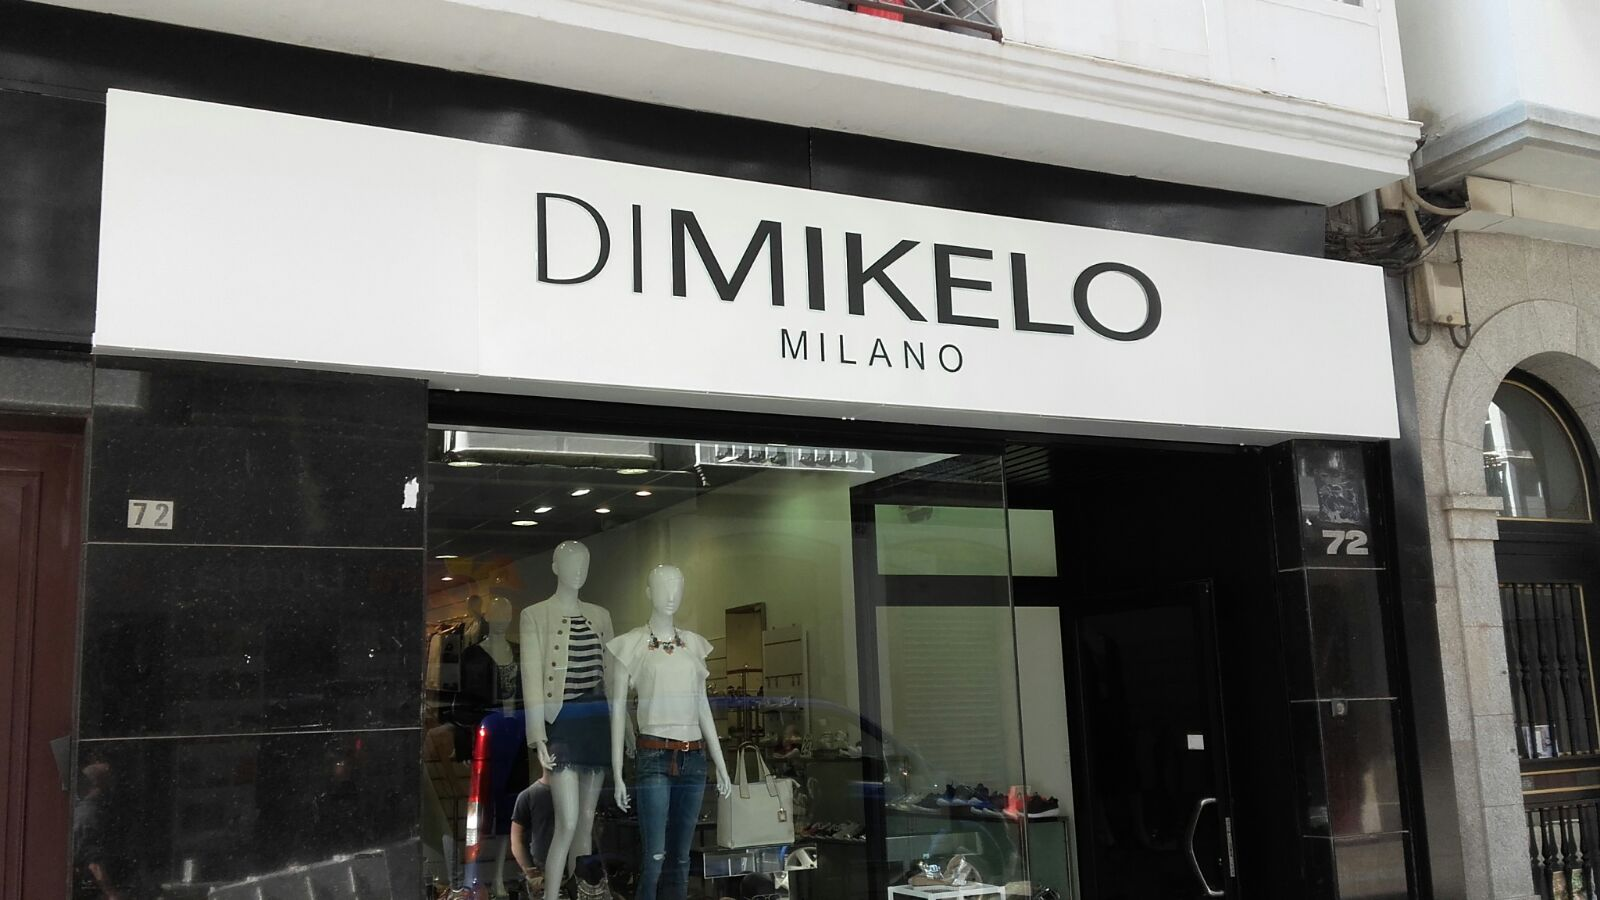 Dimikelo